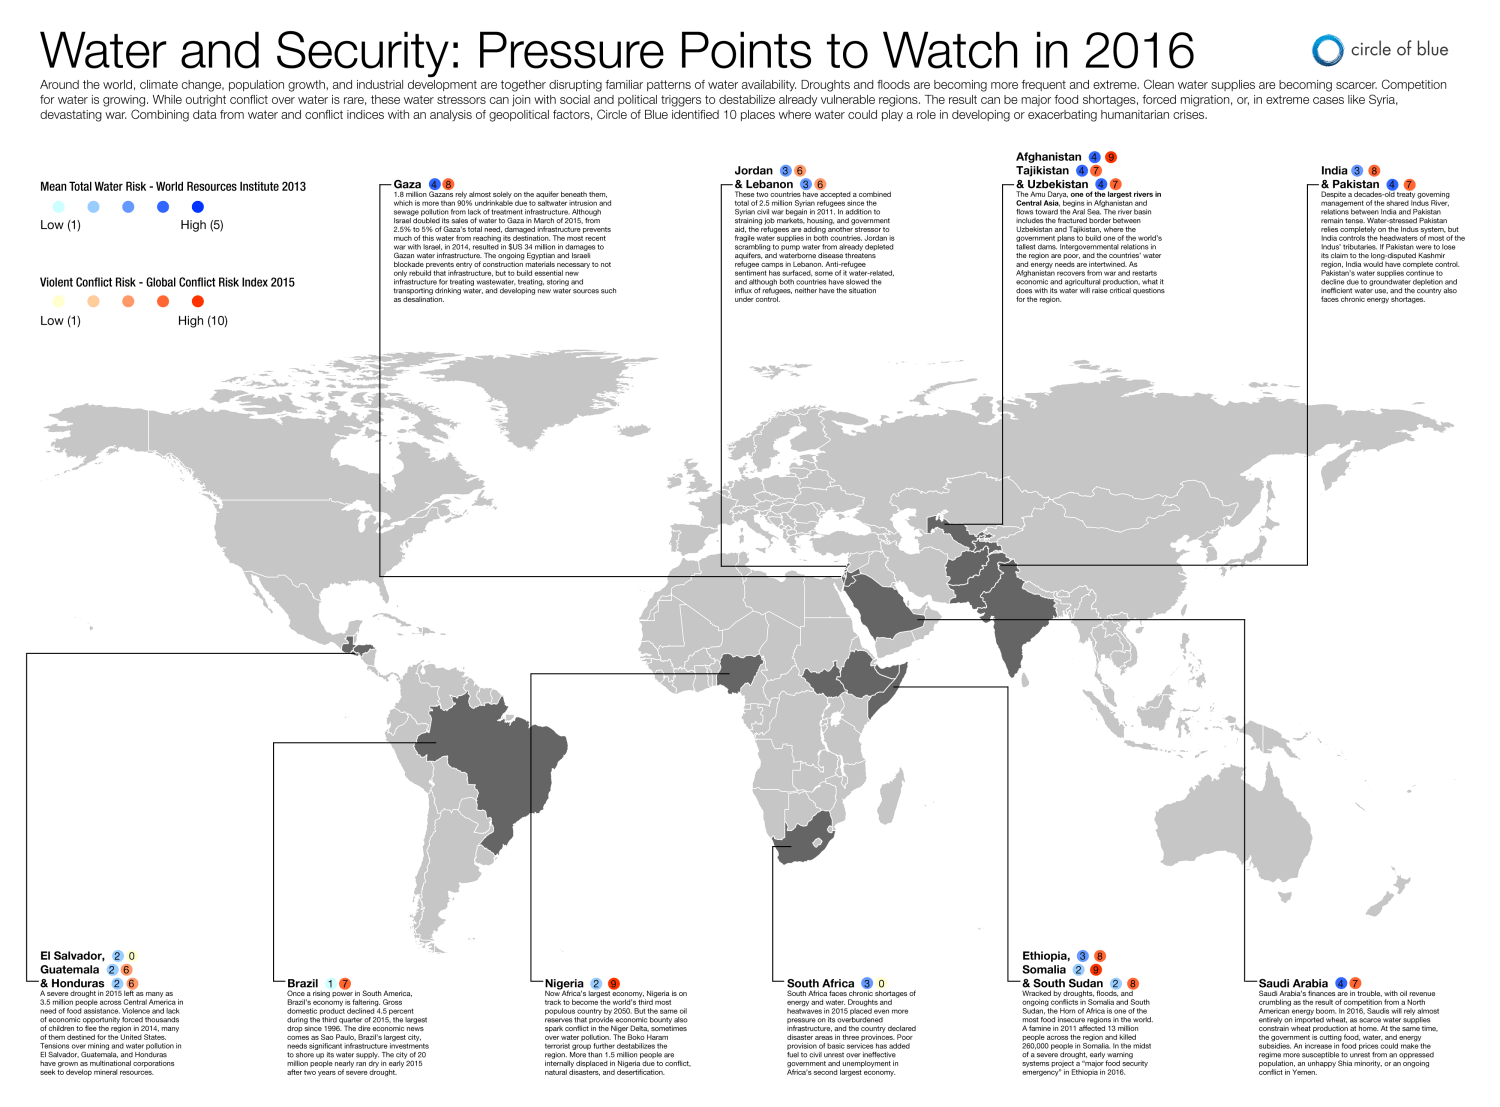 Water conflict security world map hot spots Kaye LaFond Circle of Blue